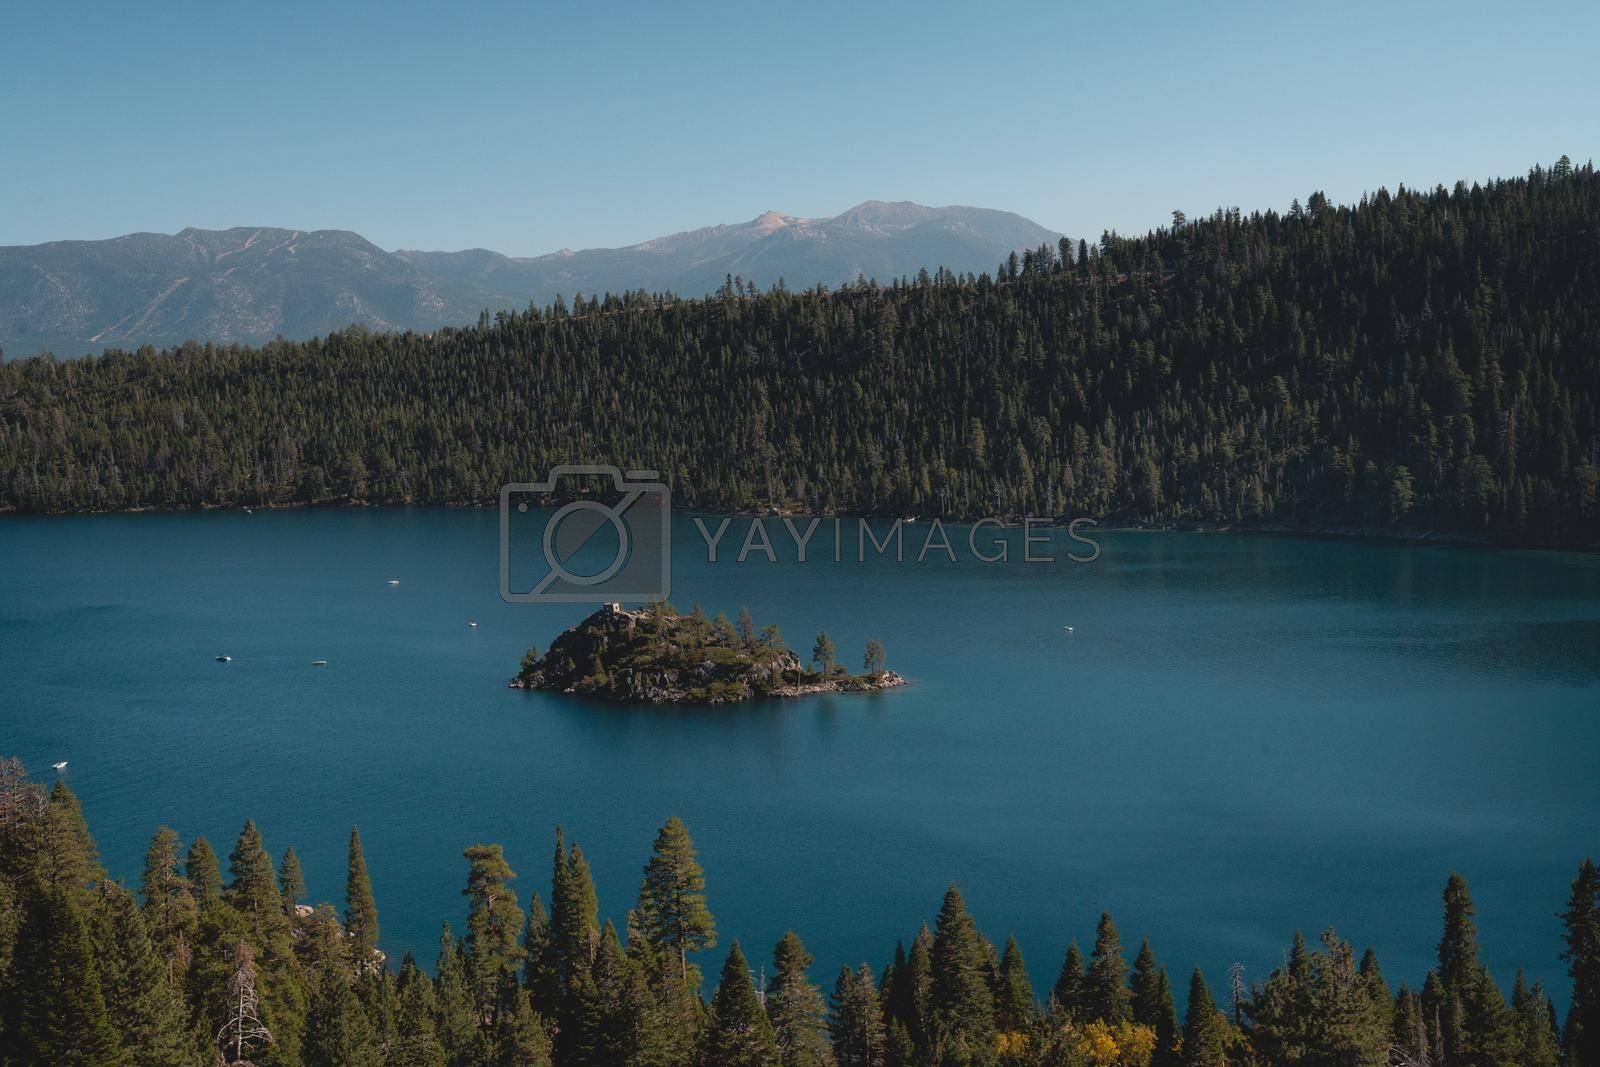 An island in an alpine lake in the mountains.